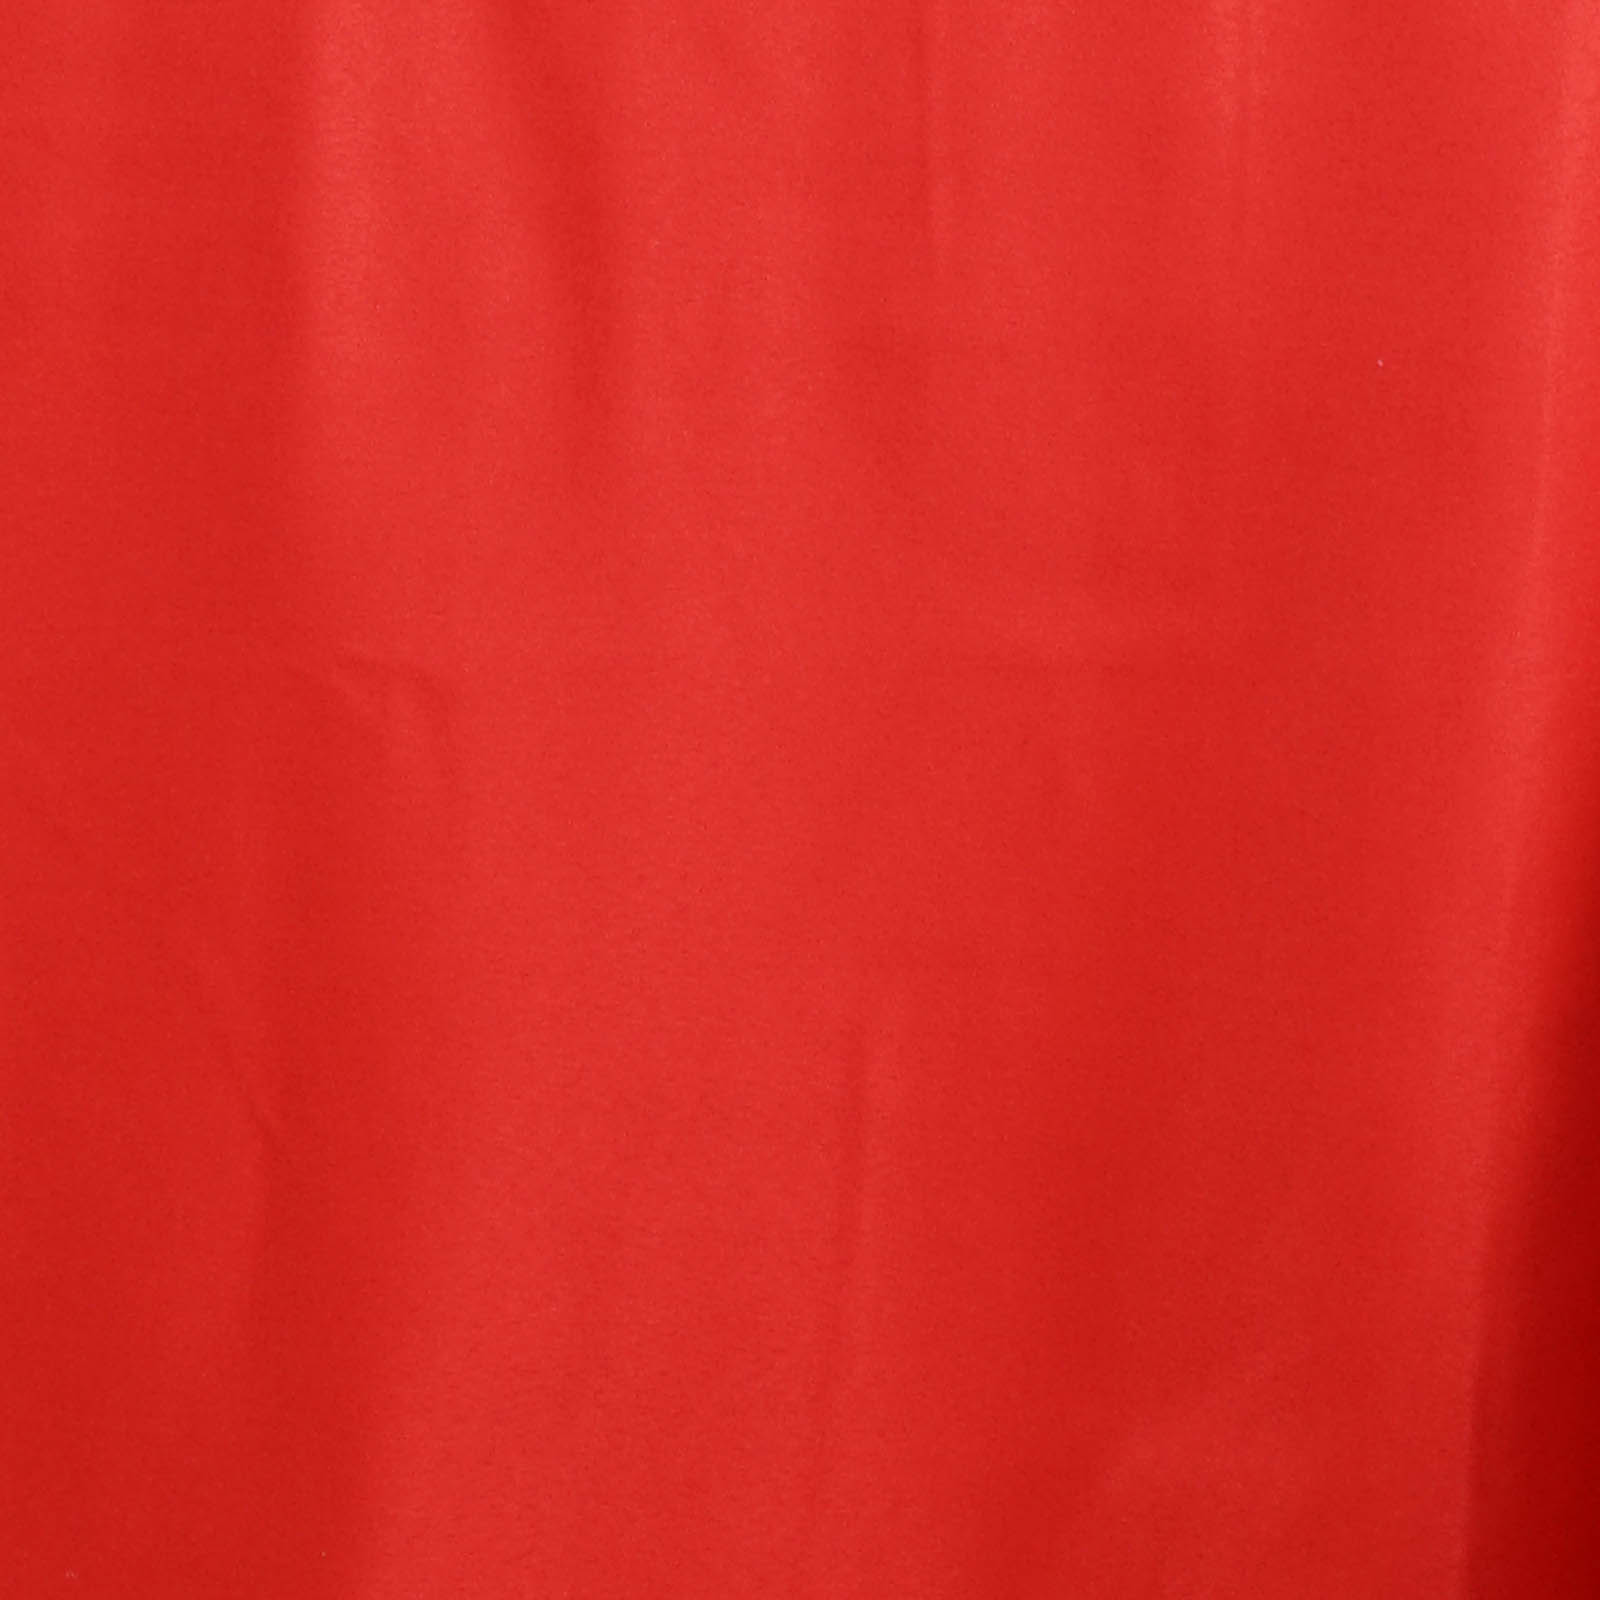 90x132-034-Polyester-Rectangle-Tablecloths-For-Wedding-Party-Banquet-Events thumbnail 36